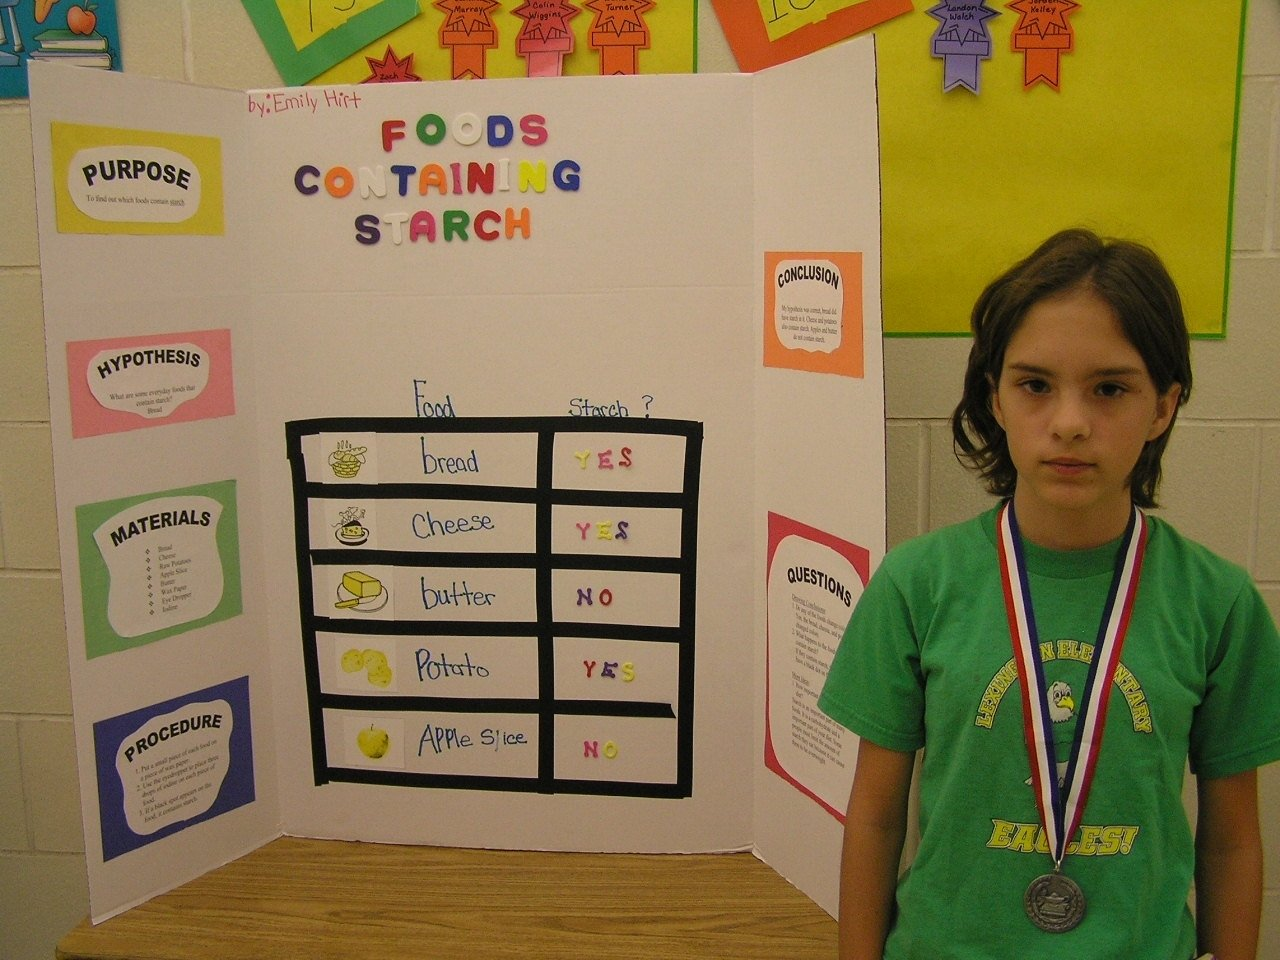 10 Beautiful 3Rd Grade Science Fair Project Ideas For Kids science finally discovers my 3rd grade science fair project 4 2020